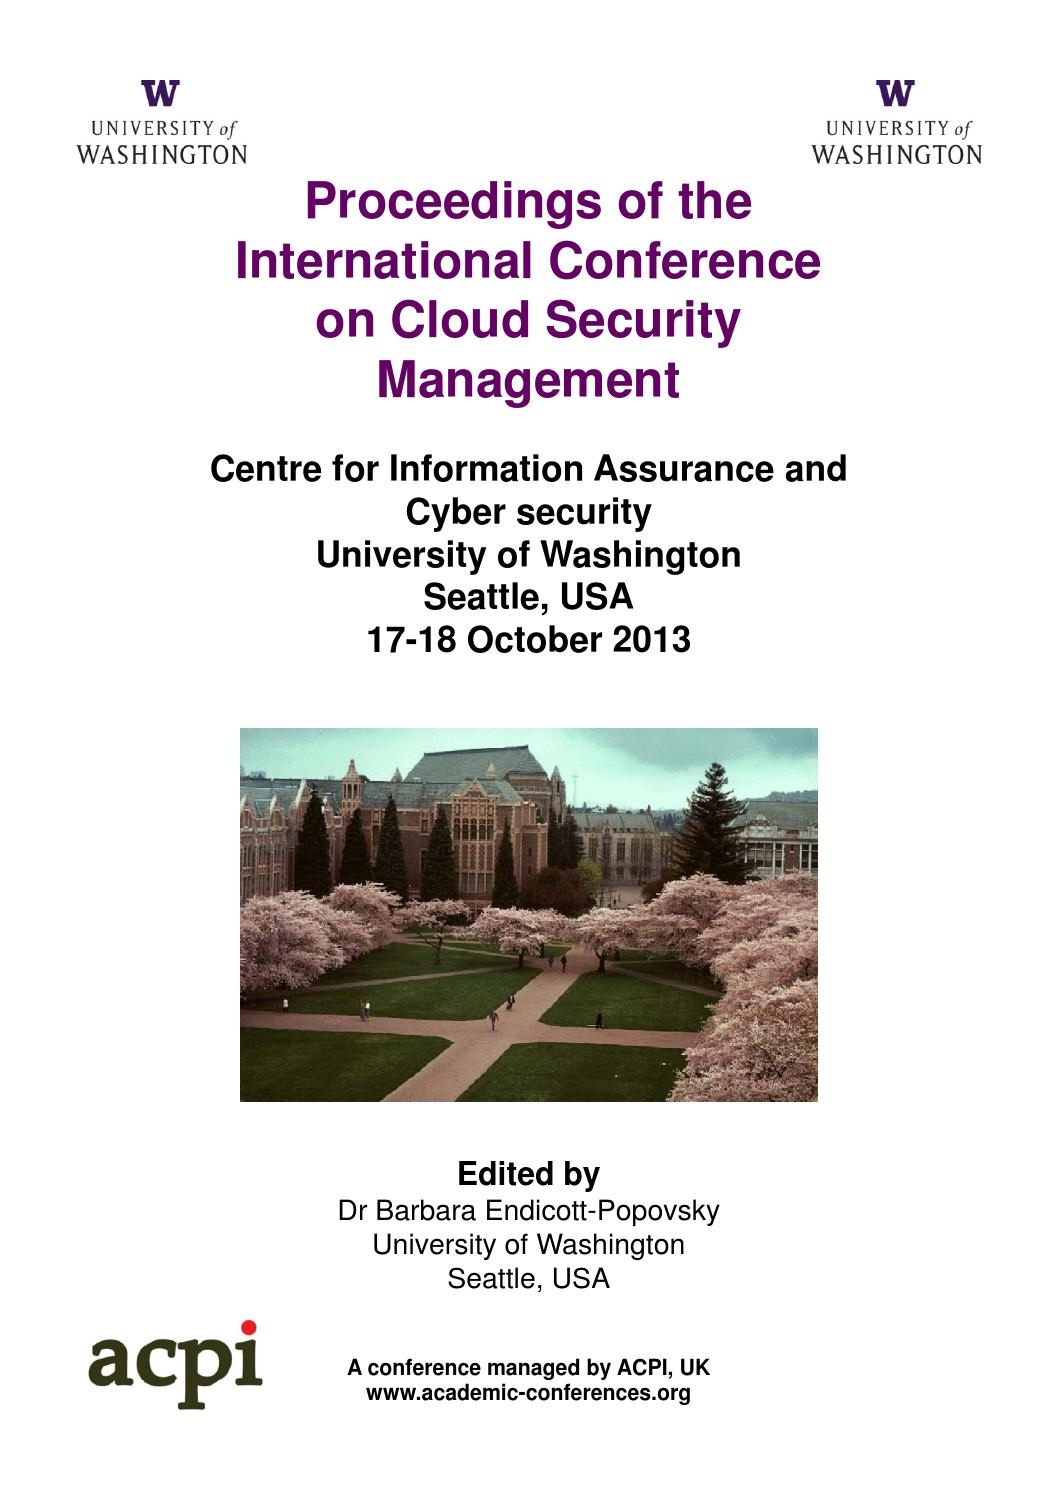 The Proceedings of the International Conference on Cloud